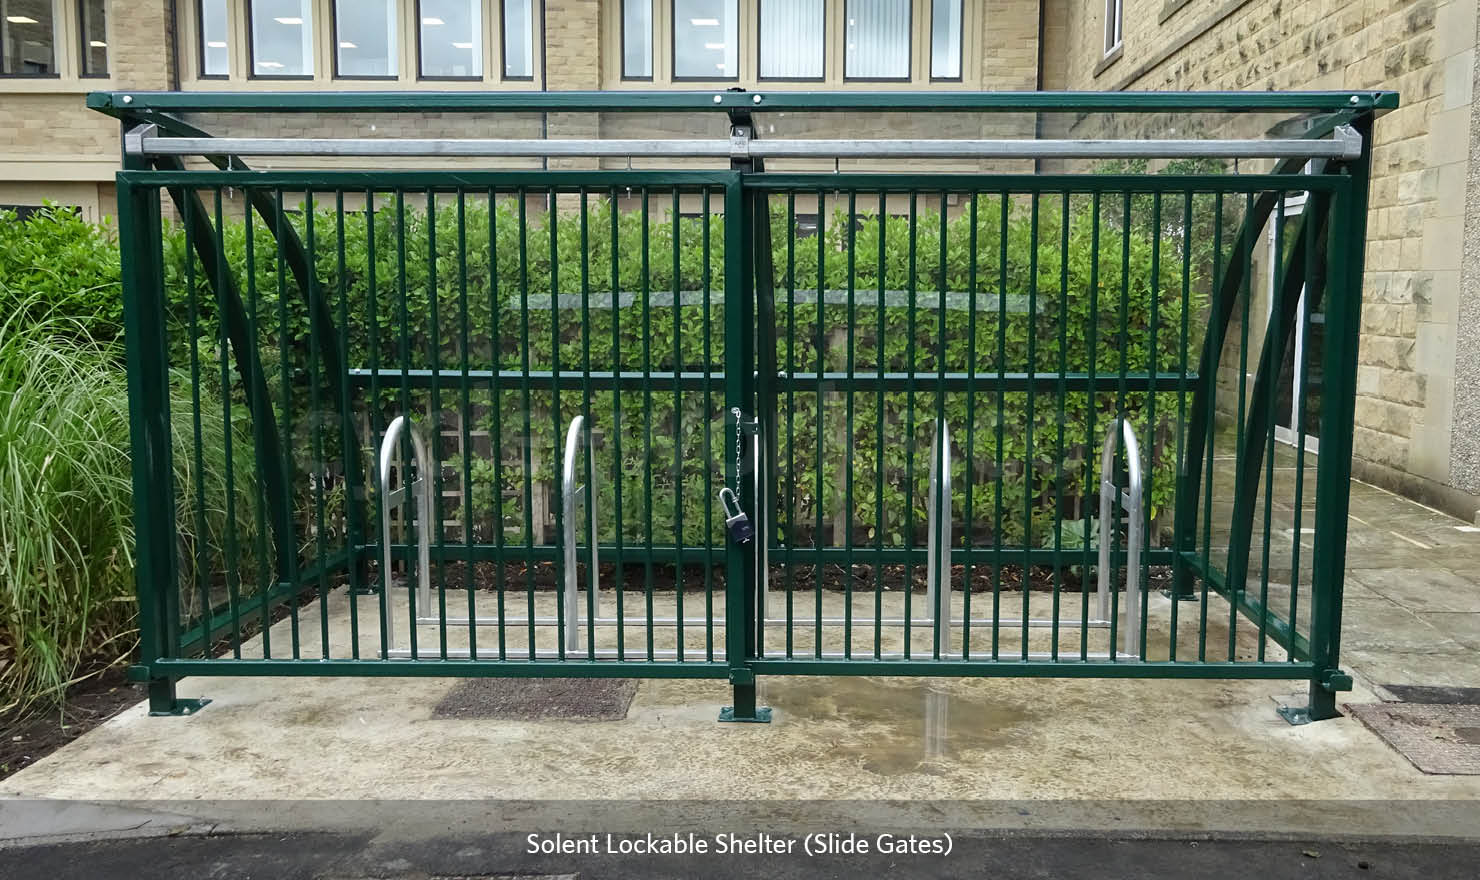 Cycle Shelter with Racks